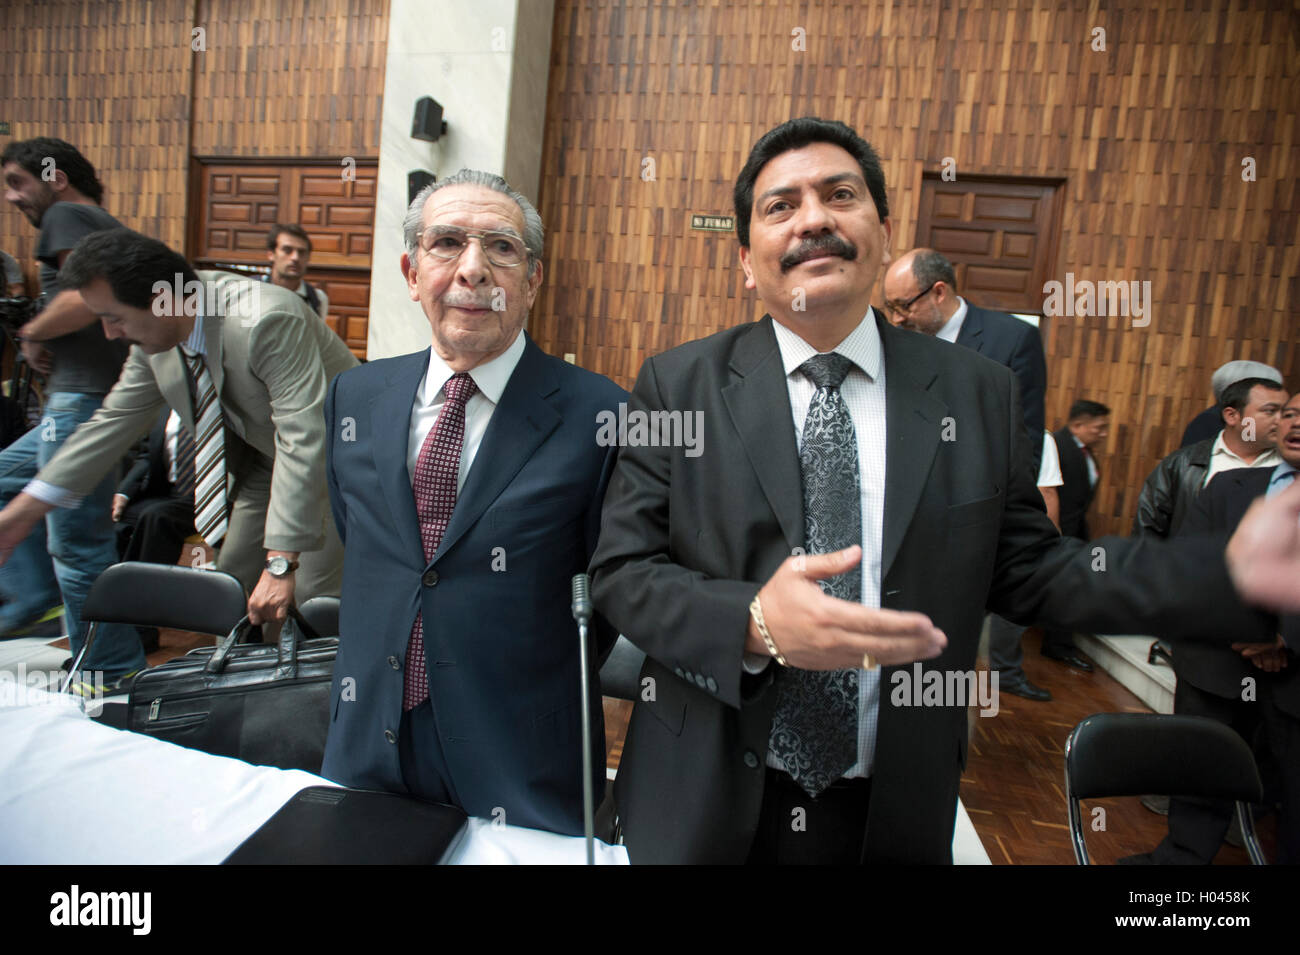 Rios Montt, left, and defense lawyer Francisco Garcia Gudiel at supreme court in Guatemala City_Genocide Trial Day - Stock Image